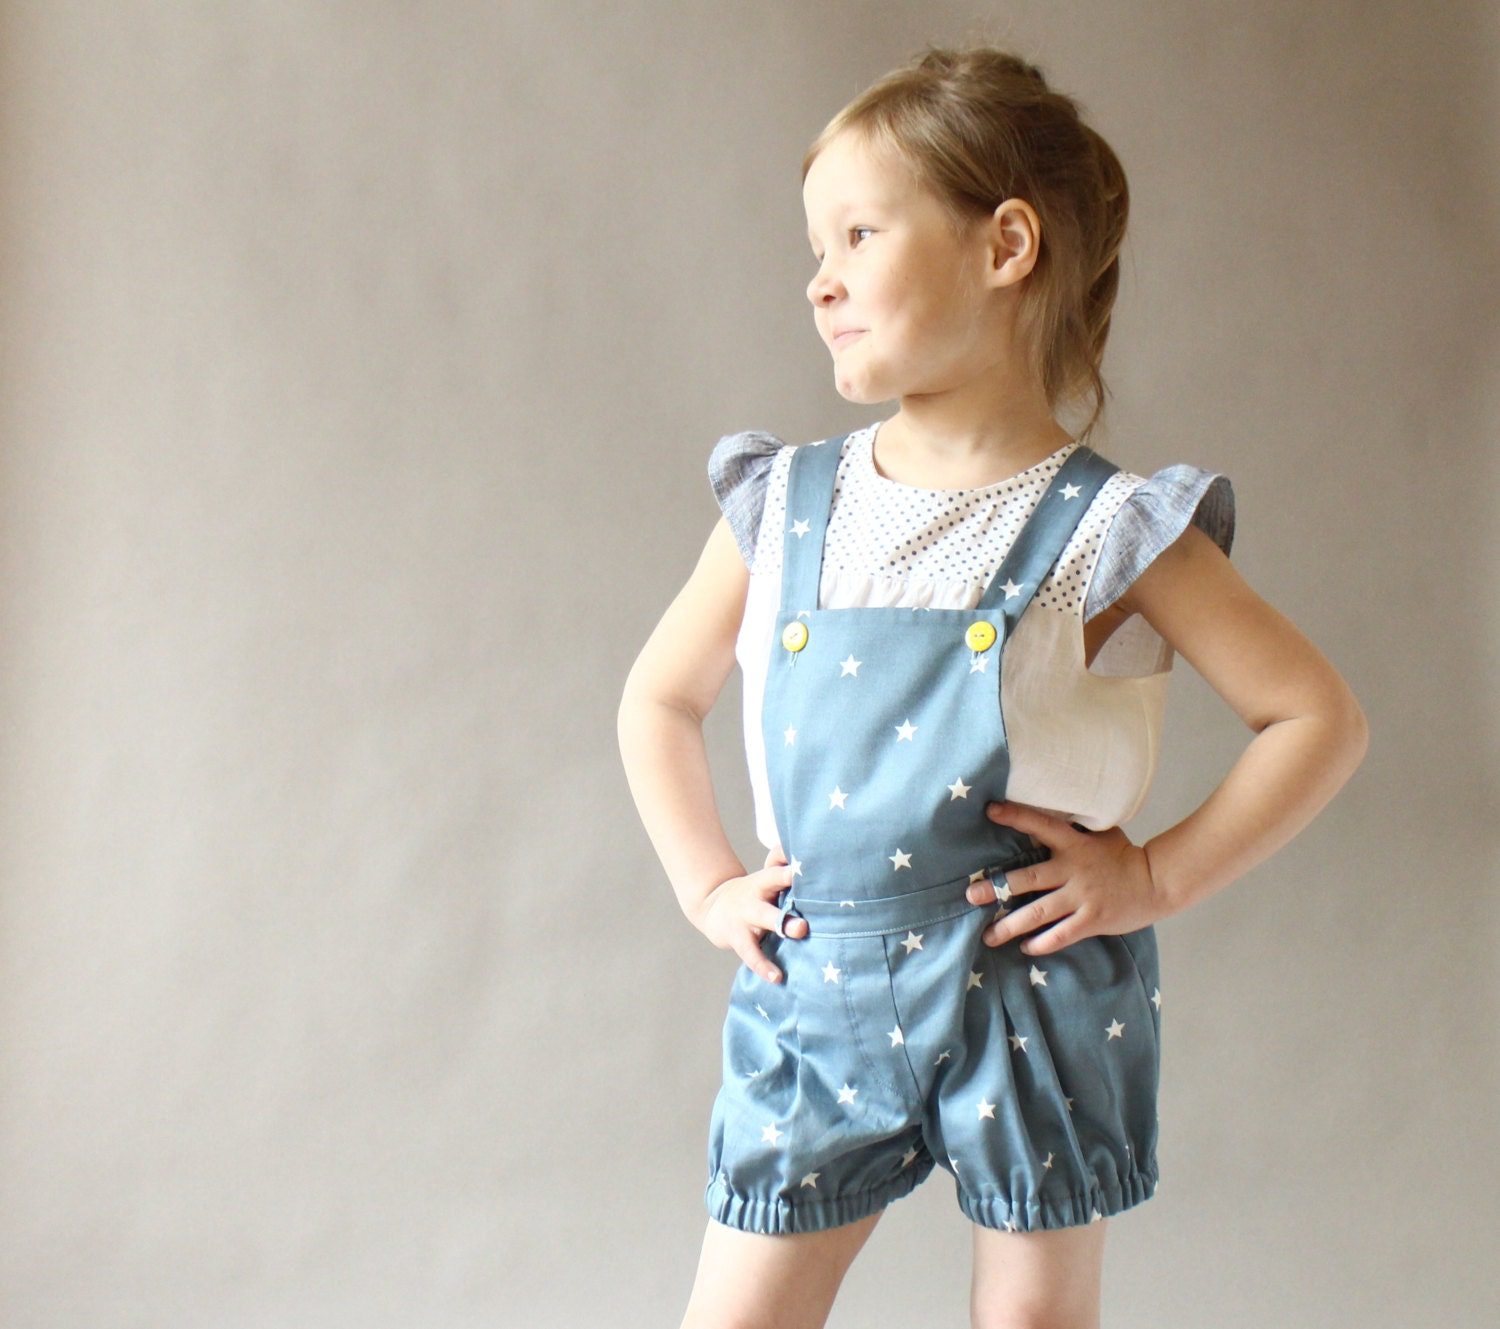 Find great deals on Girls Overalls at Kohl's today! Sponsored Links Outside companies pay to advertise via these links when specific phrases and words are searched.